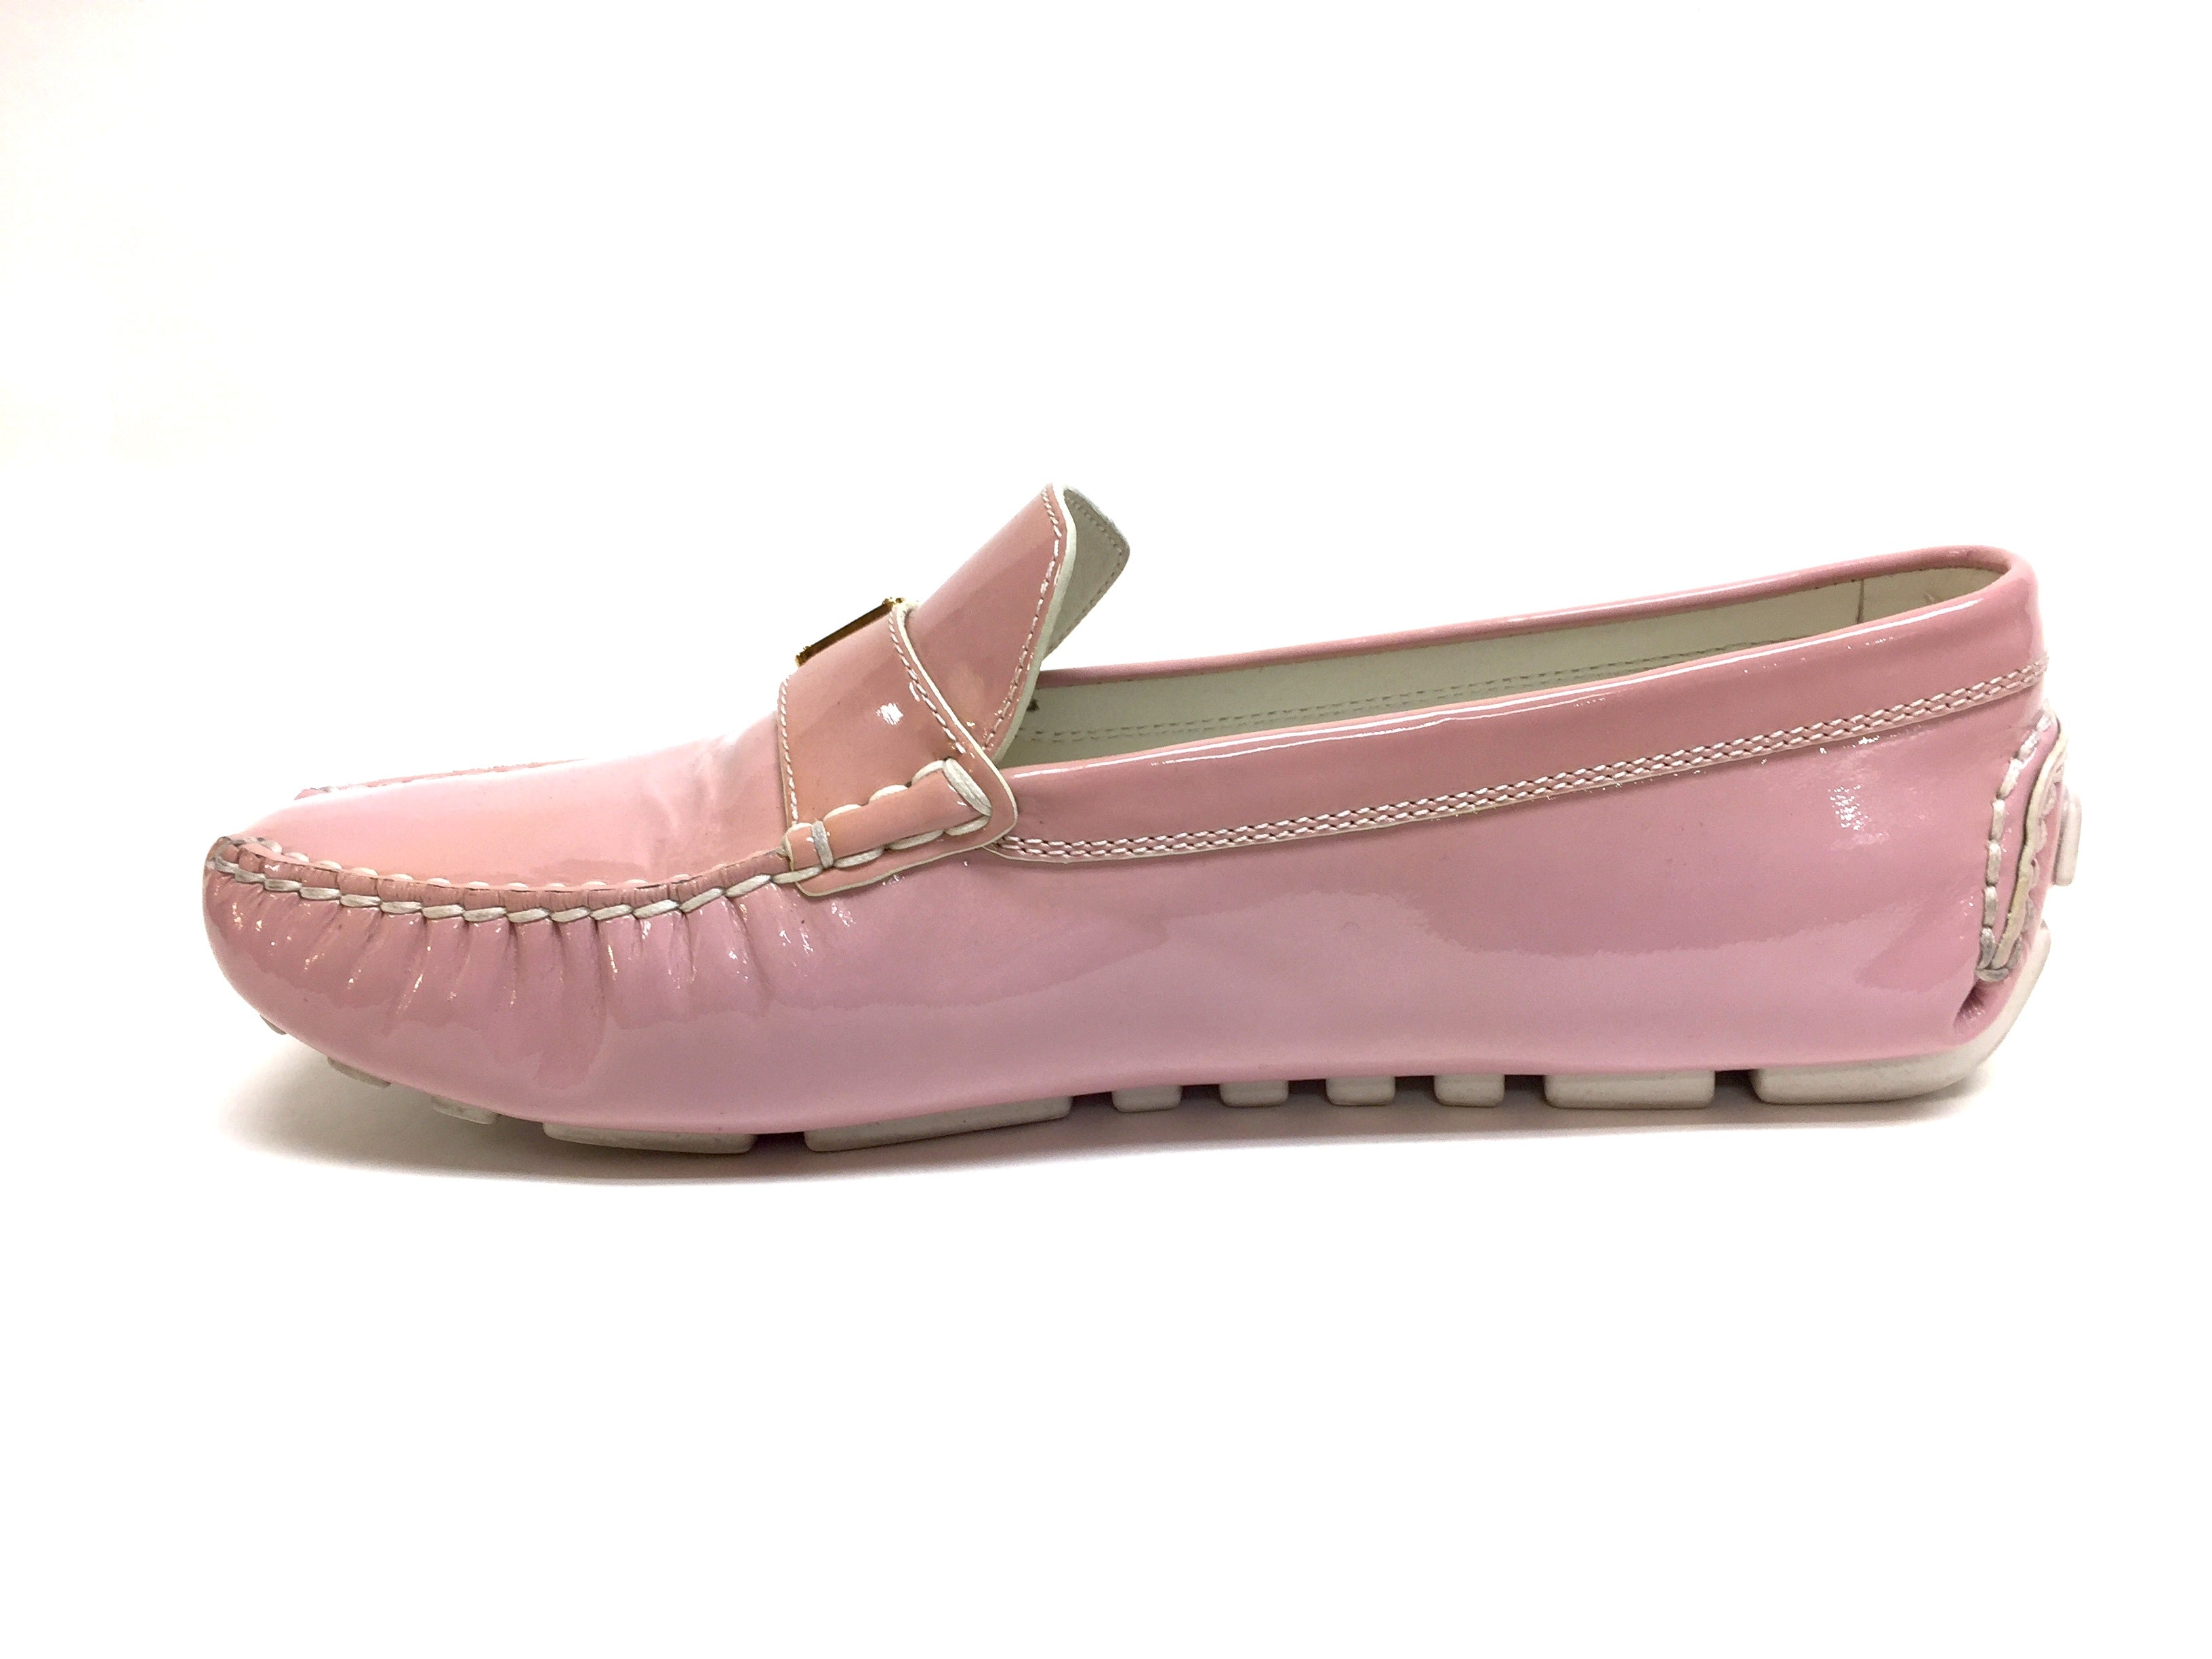 LOUIS VUITTON Pink Patent Leather LOMBOK Women Driving Loafers Shoes Shoes  Size  39.5 740c32934248